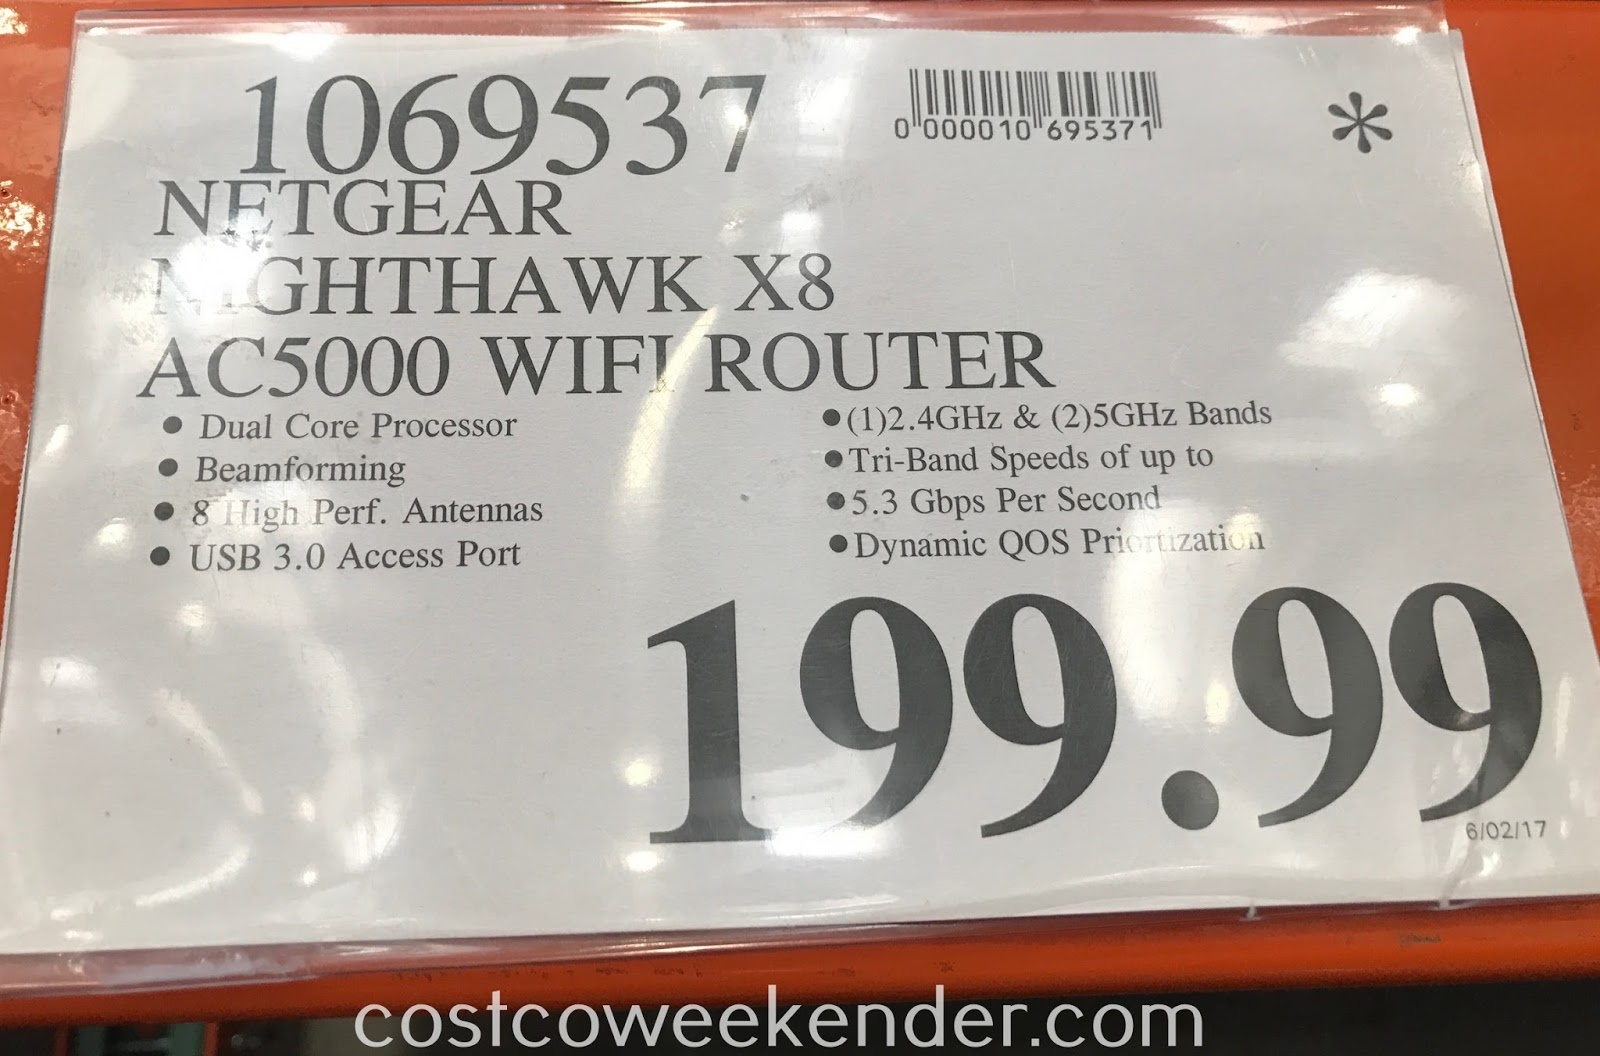 Deal for the Netgear Nighthawk X8 AC5000 Smart WiFi Router (R8300) at Costco